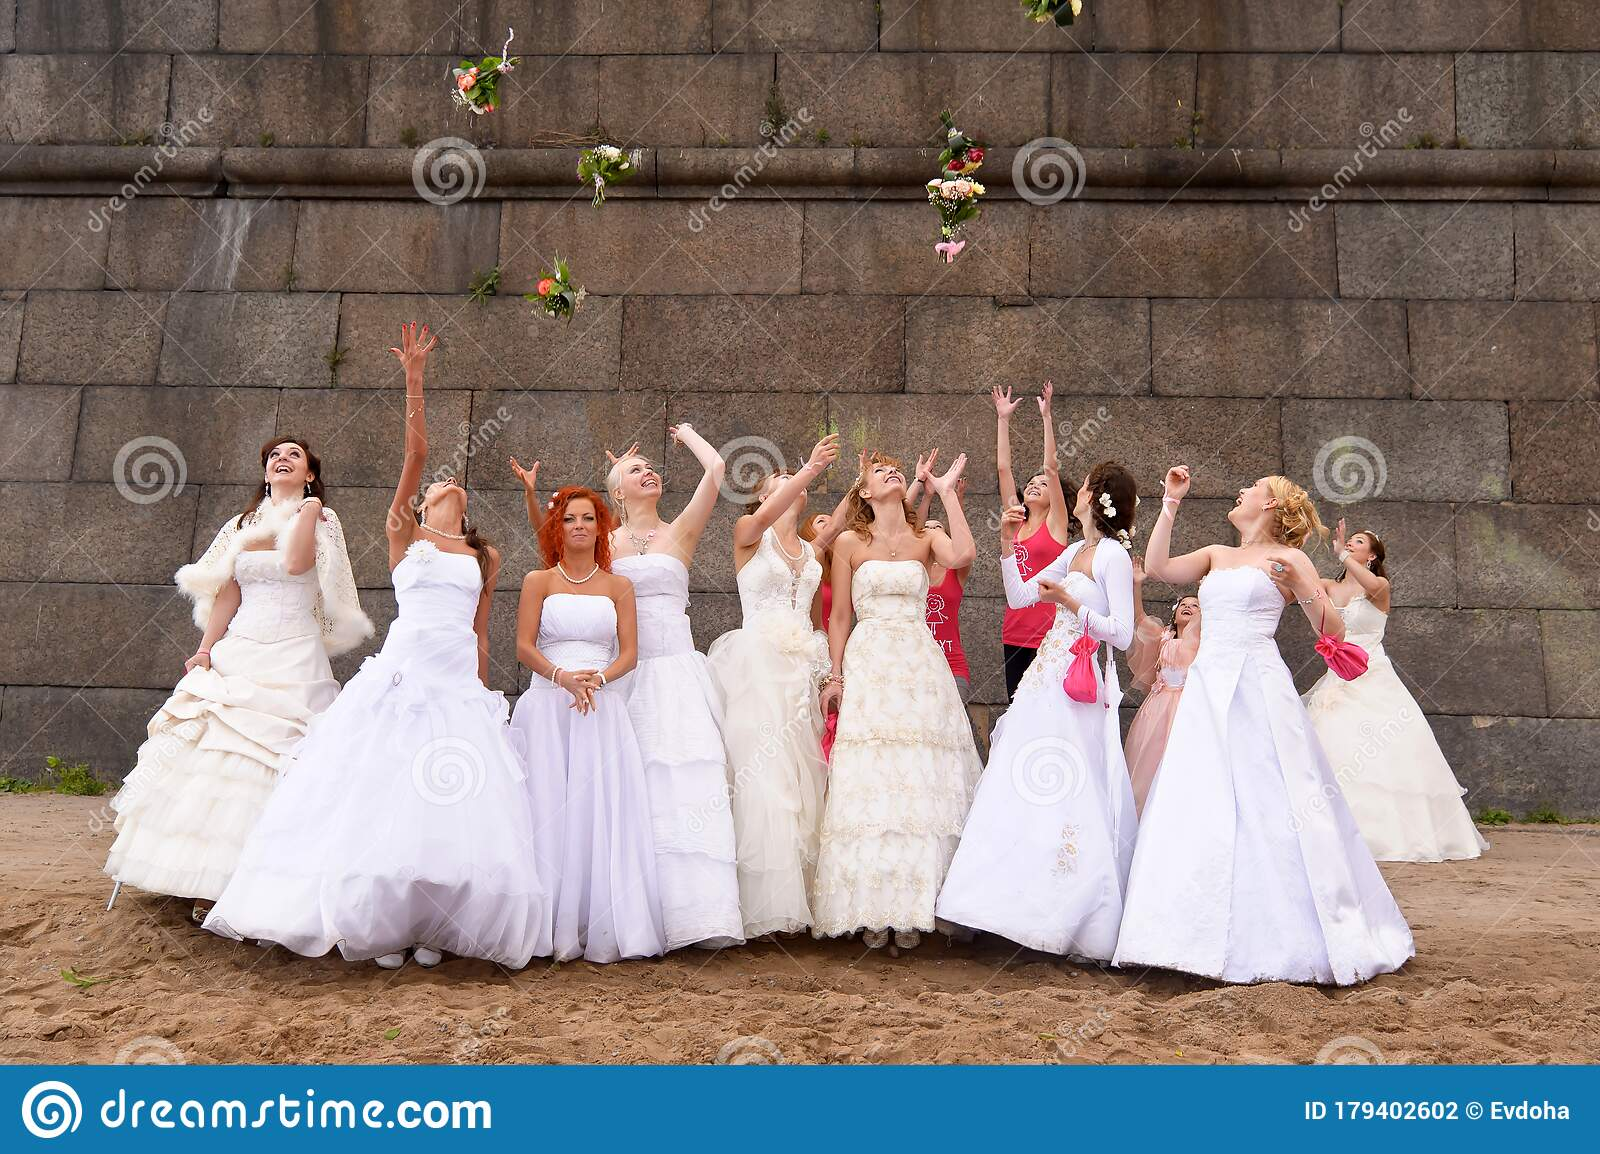 parade bride cosmopolitan festival russia st petersburg riding brides all russian action takes place simultaneously 179402602 Just How To Keep Hot Russian Brides.